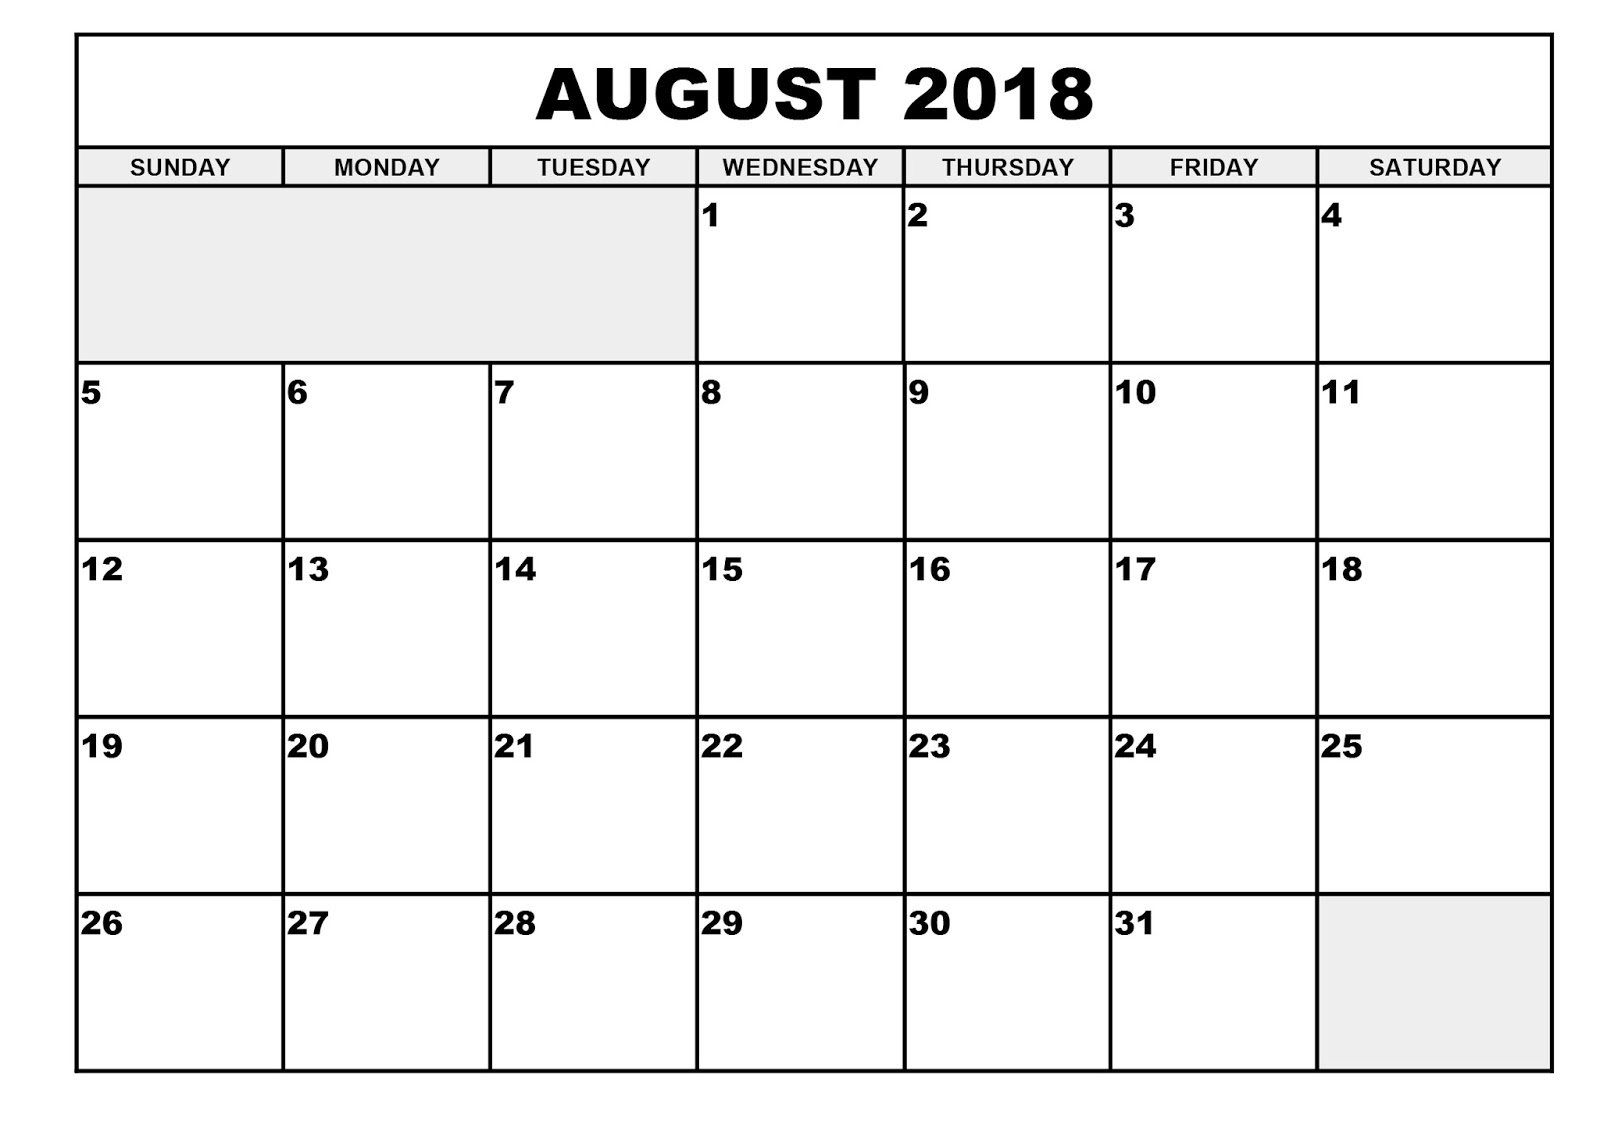 agust month printable calendars 2018 Depo Provera Printable Calendar 2018 August erdferdf